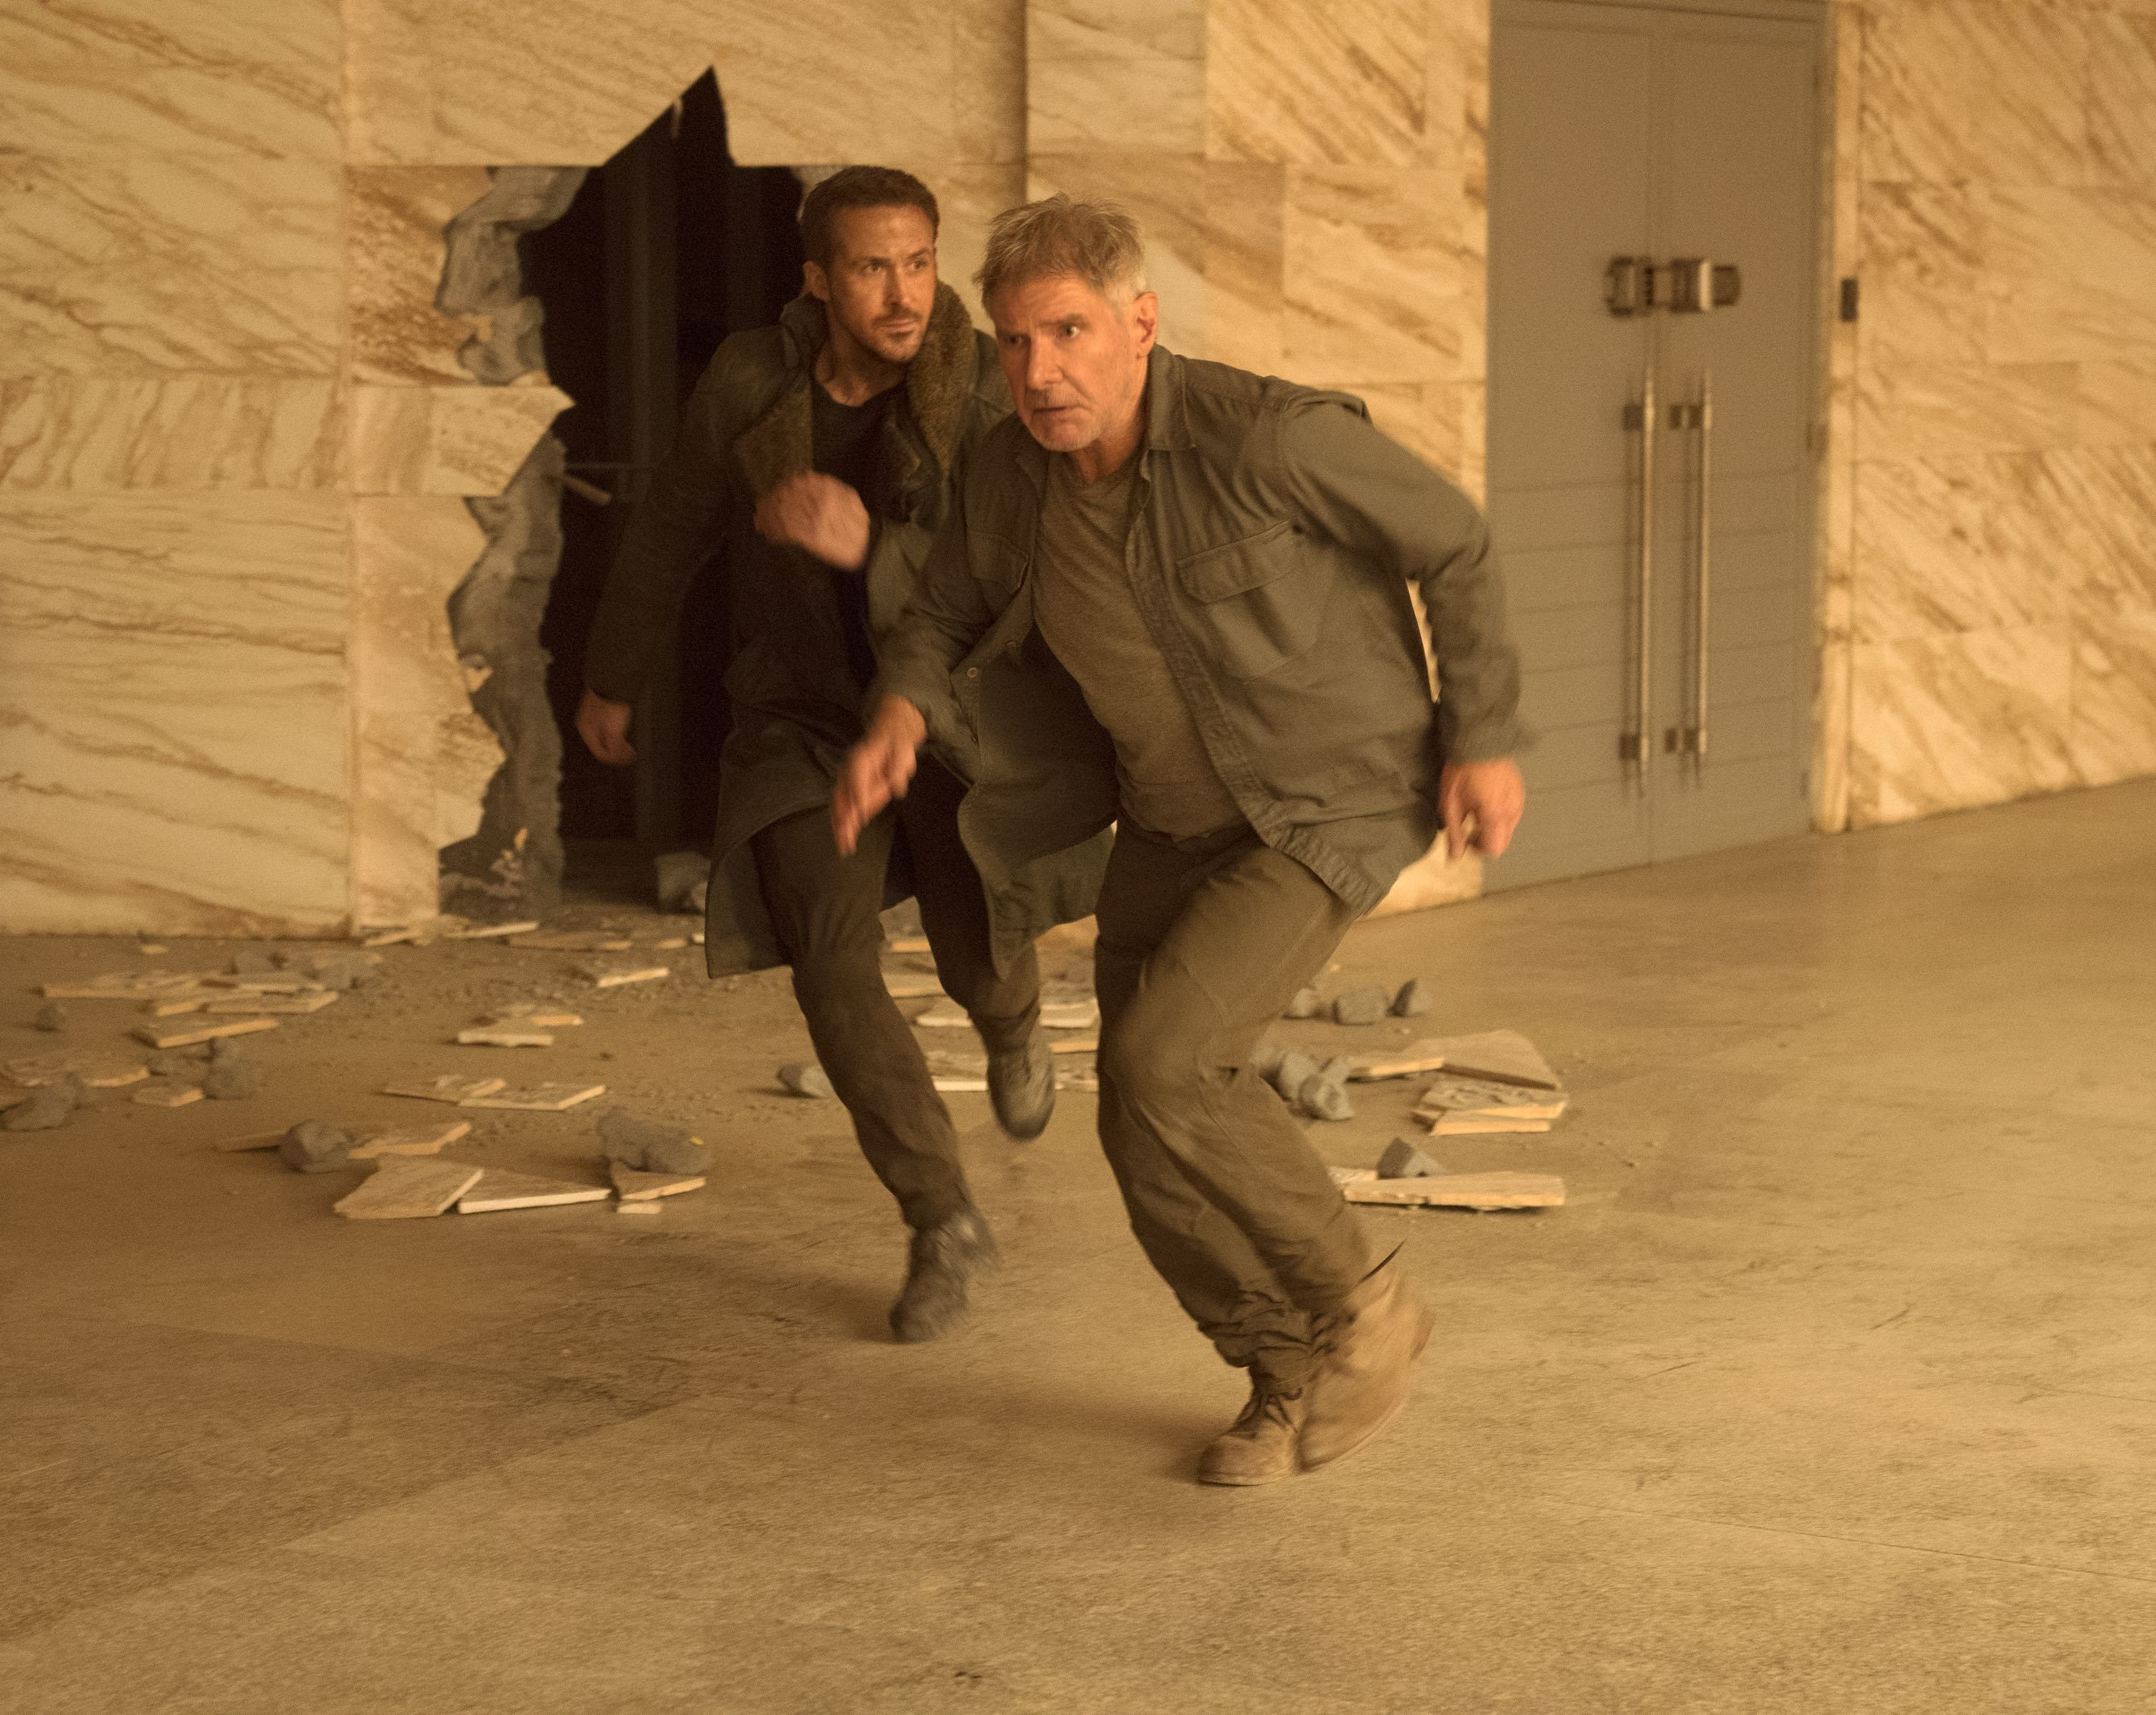 Ryan Gosling and Harrison Ford star in Alcon Entertainment's sci fi thriller BLADE RUNNER 2049 in association with Columbia Pictures, domestic distribution by Warner Bros. Pictures and international distribution by Sony Pictures Releasing International.